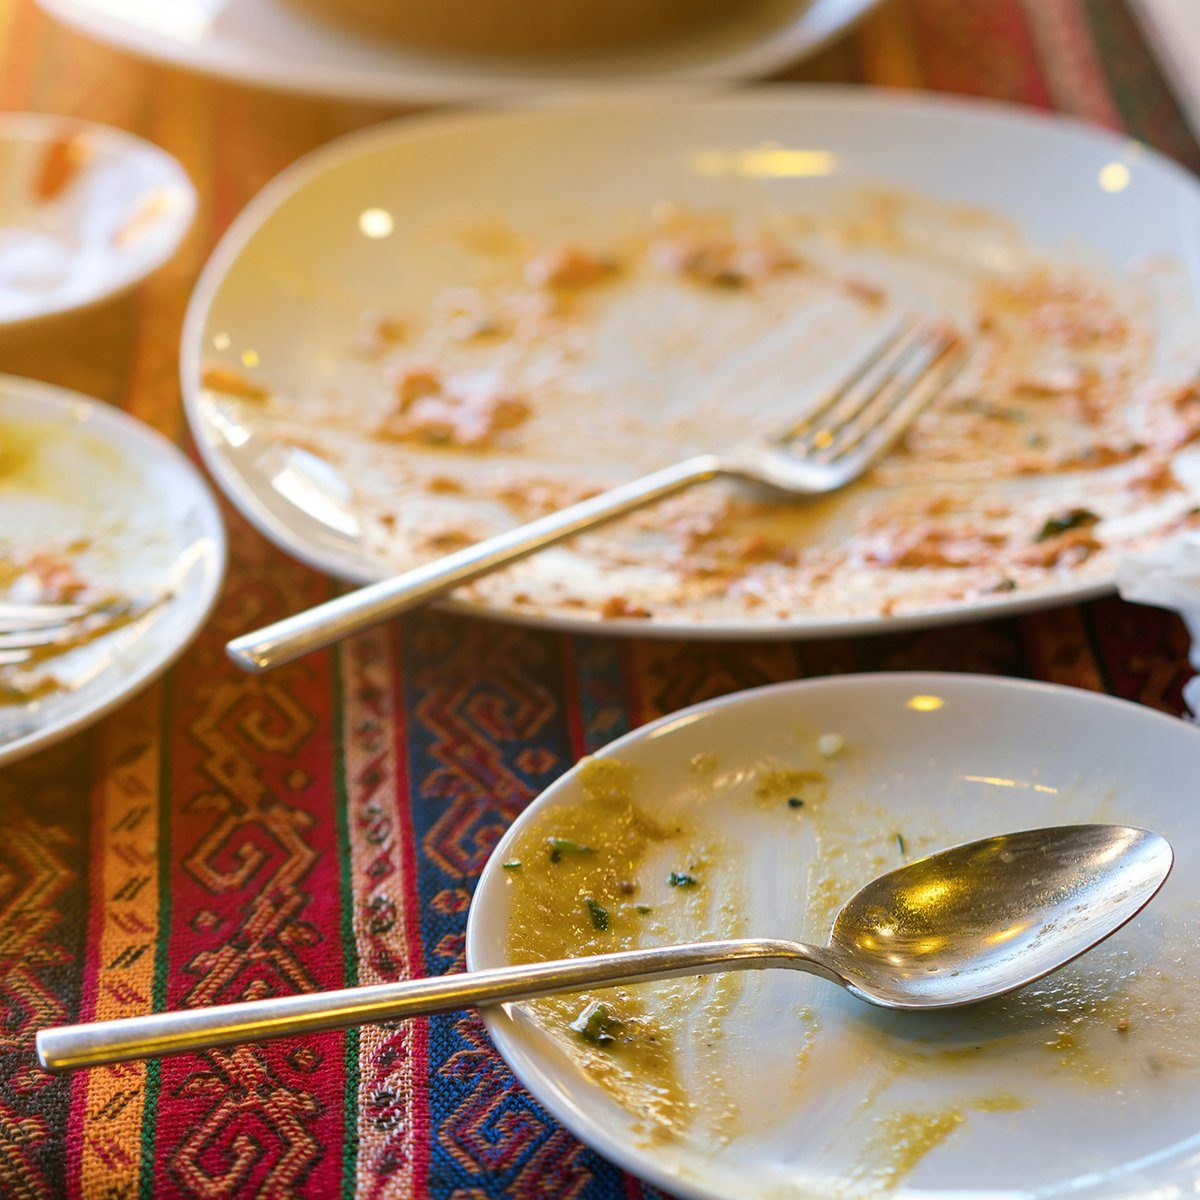 Empty dirty plates with spoon and forks on the table with a bright tablecloth